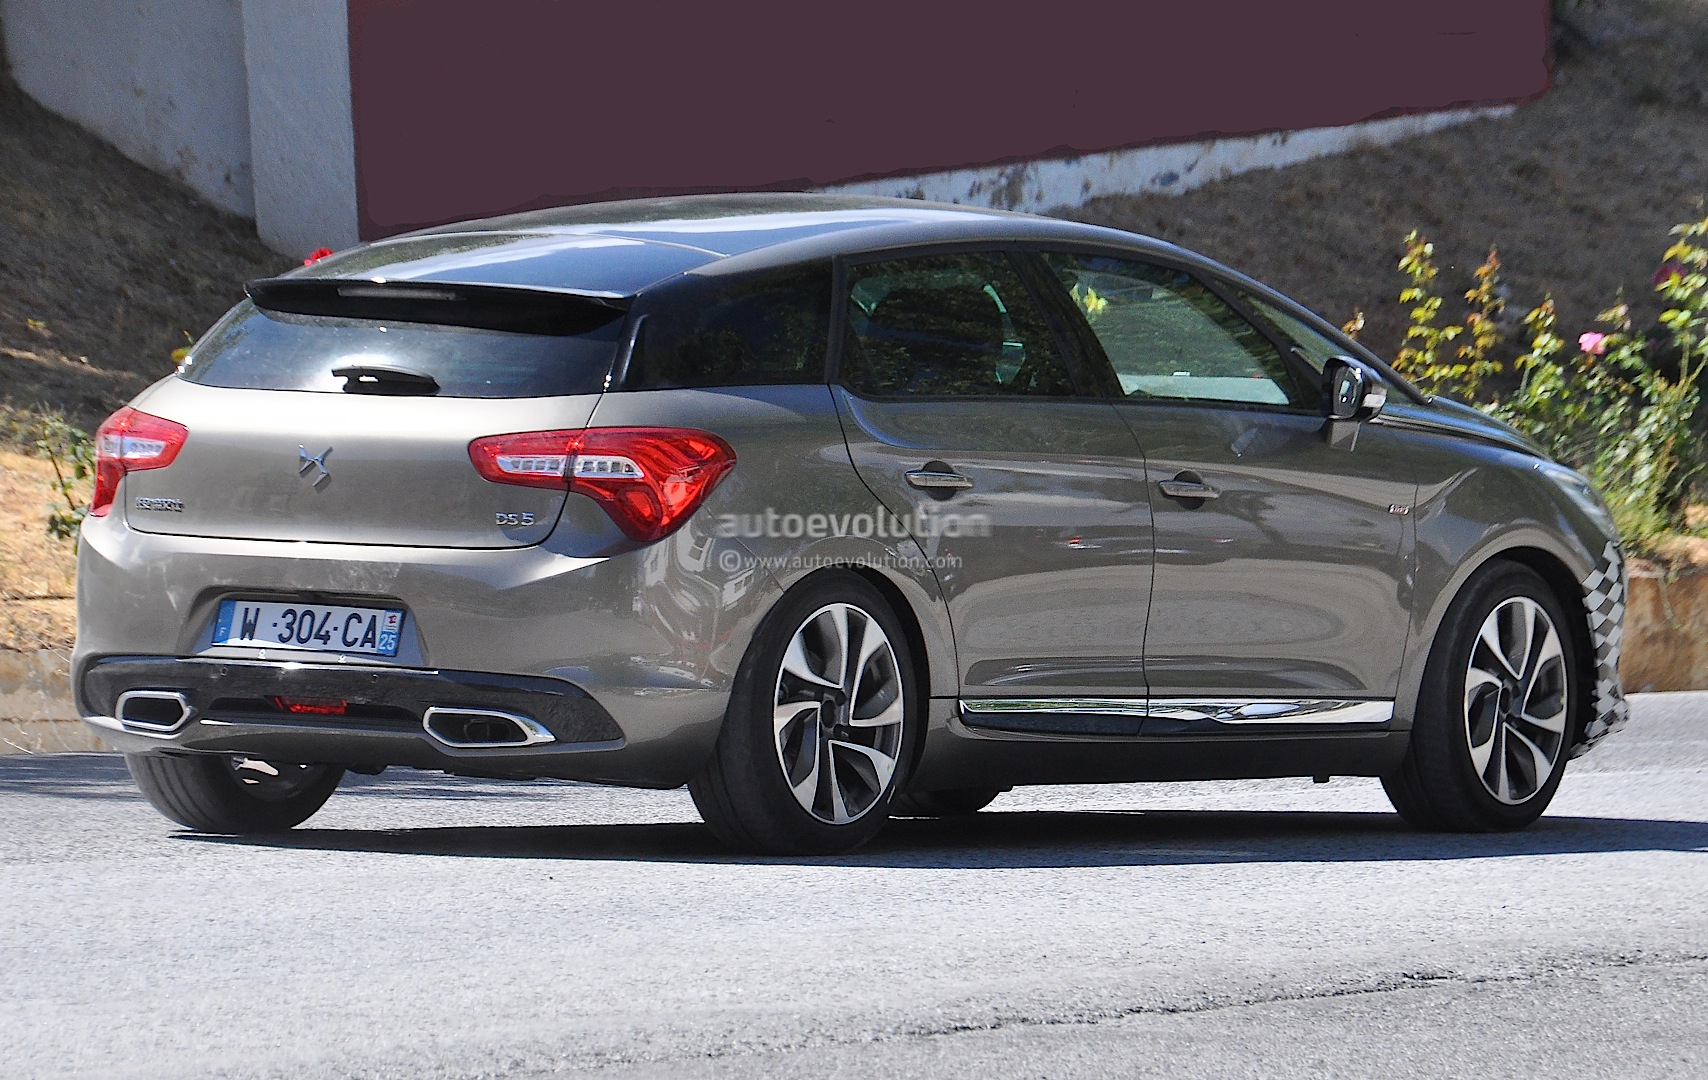 Citroen DS5 Facelift Spied for the First Time - autoevolution